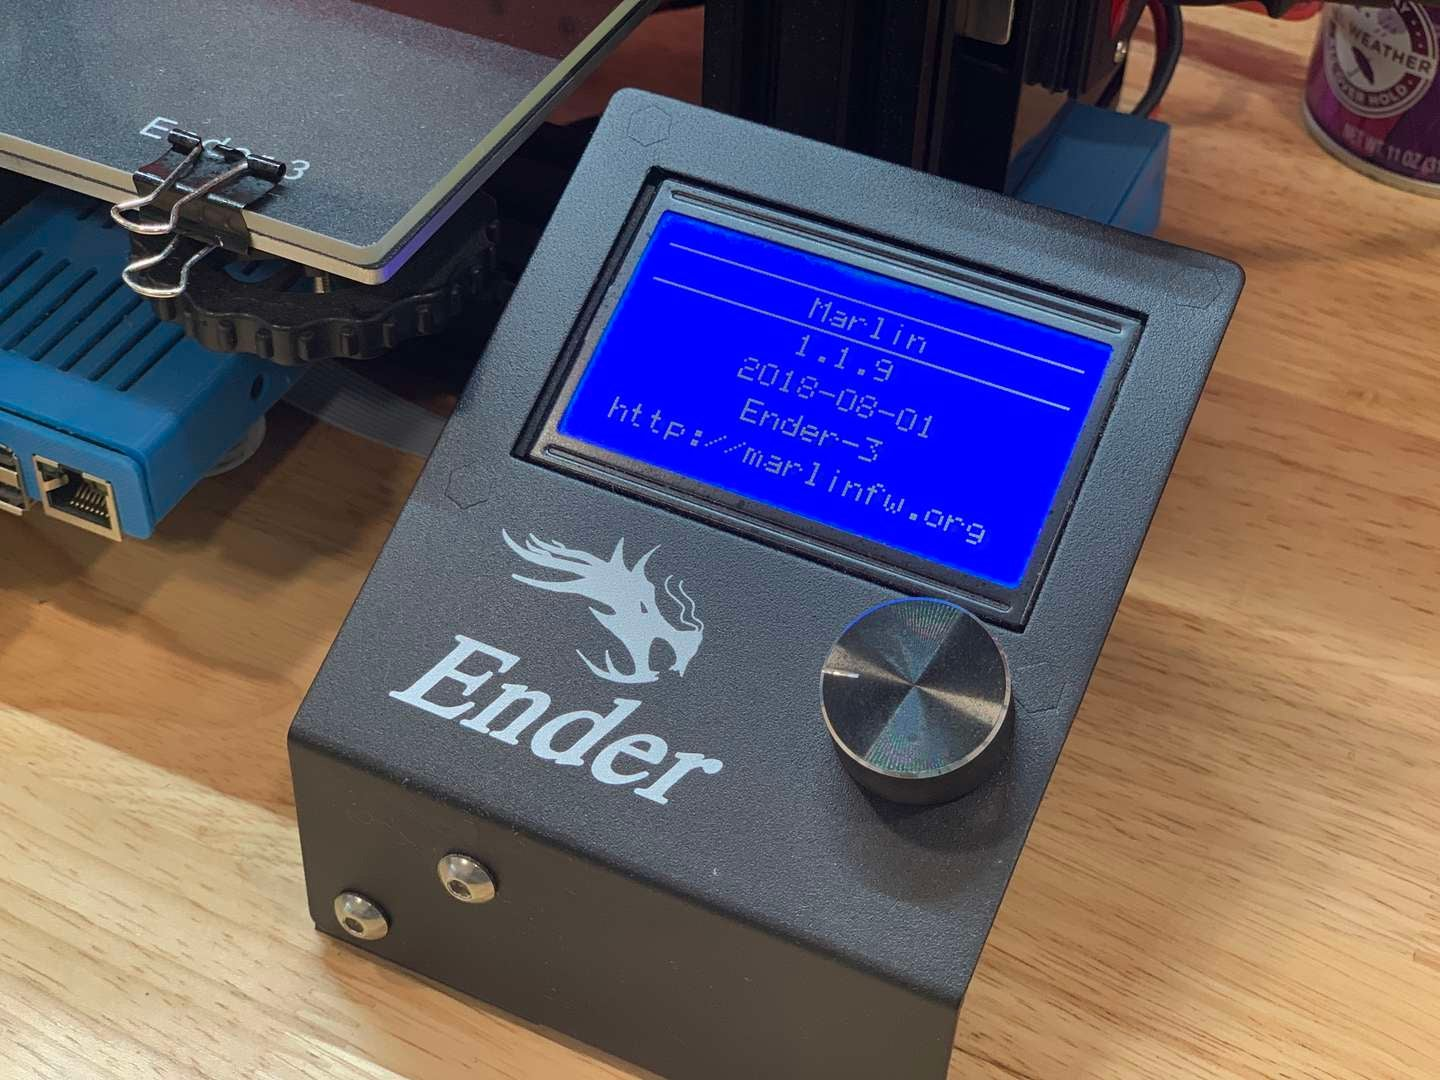 Ender 3: Install a Bootloader and Update Marlin Firmware